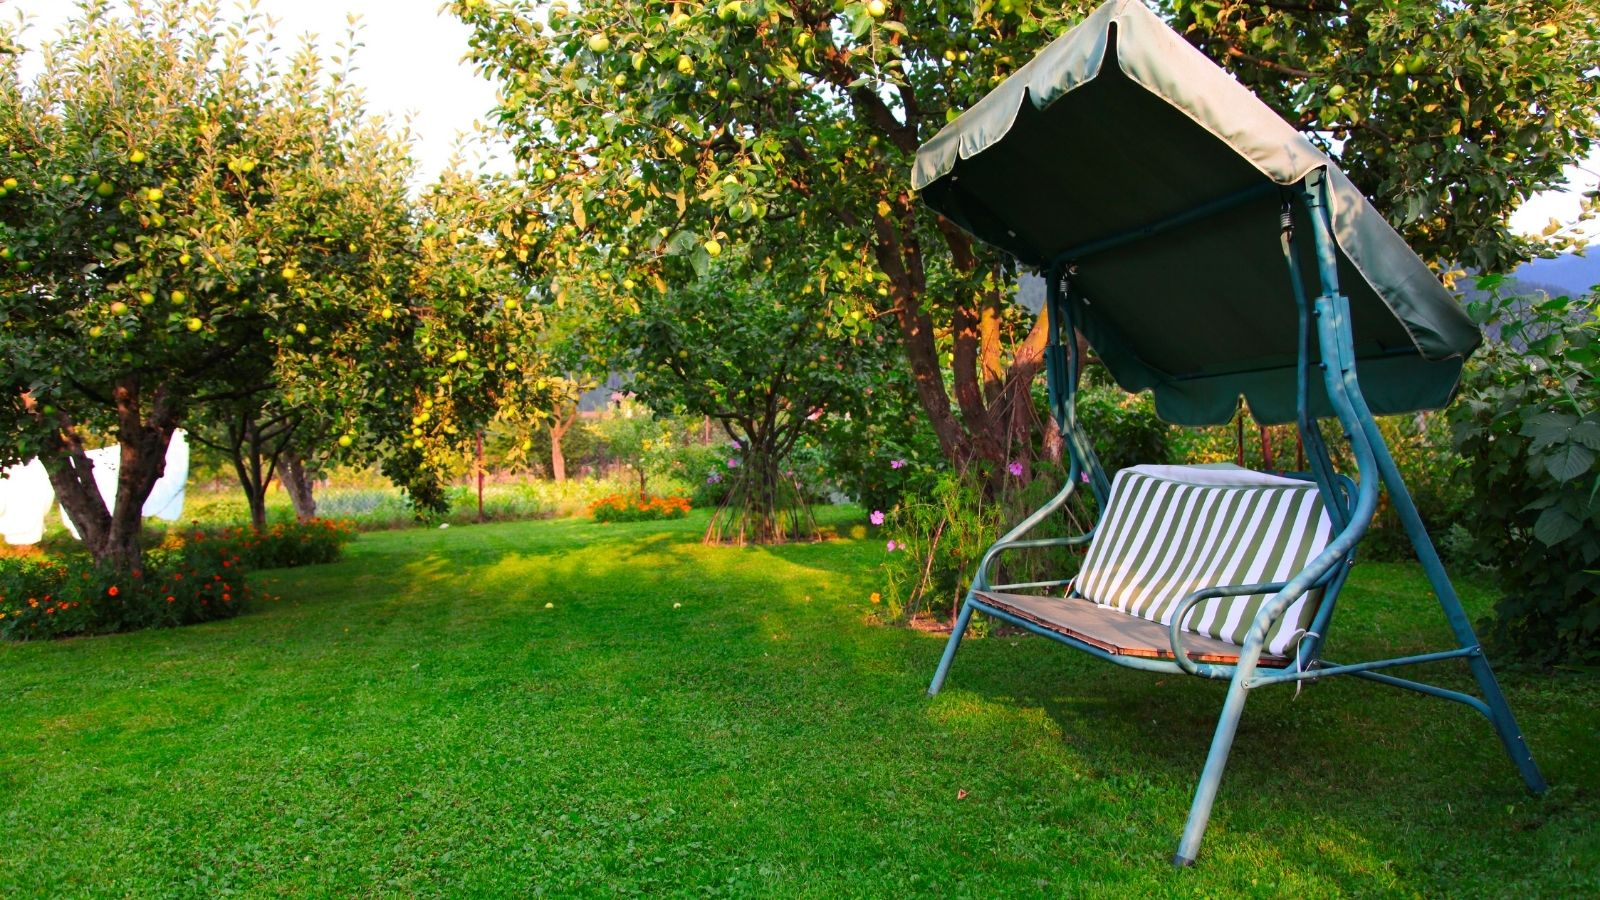 Back garden with swing-chair and apple trees